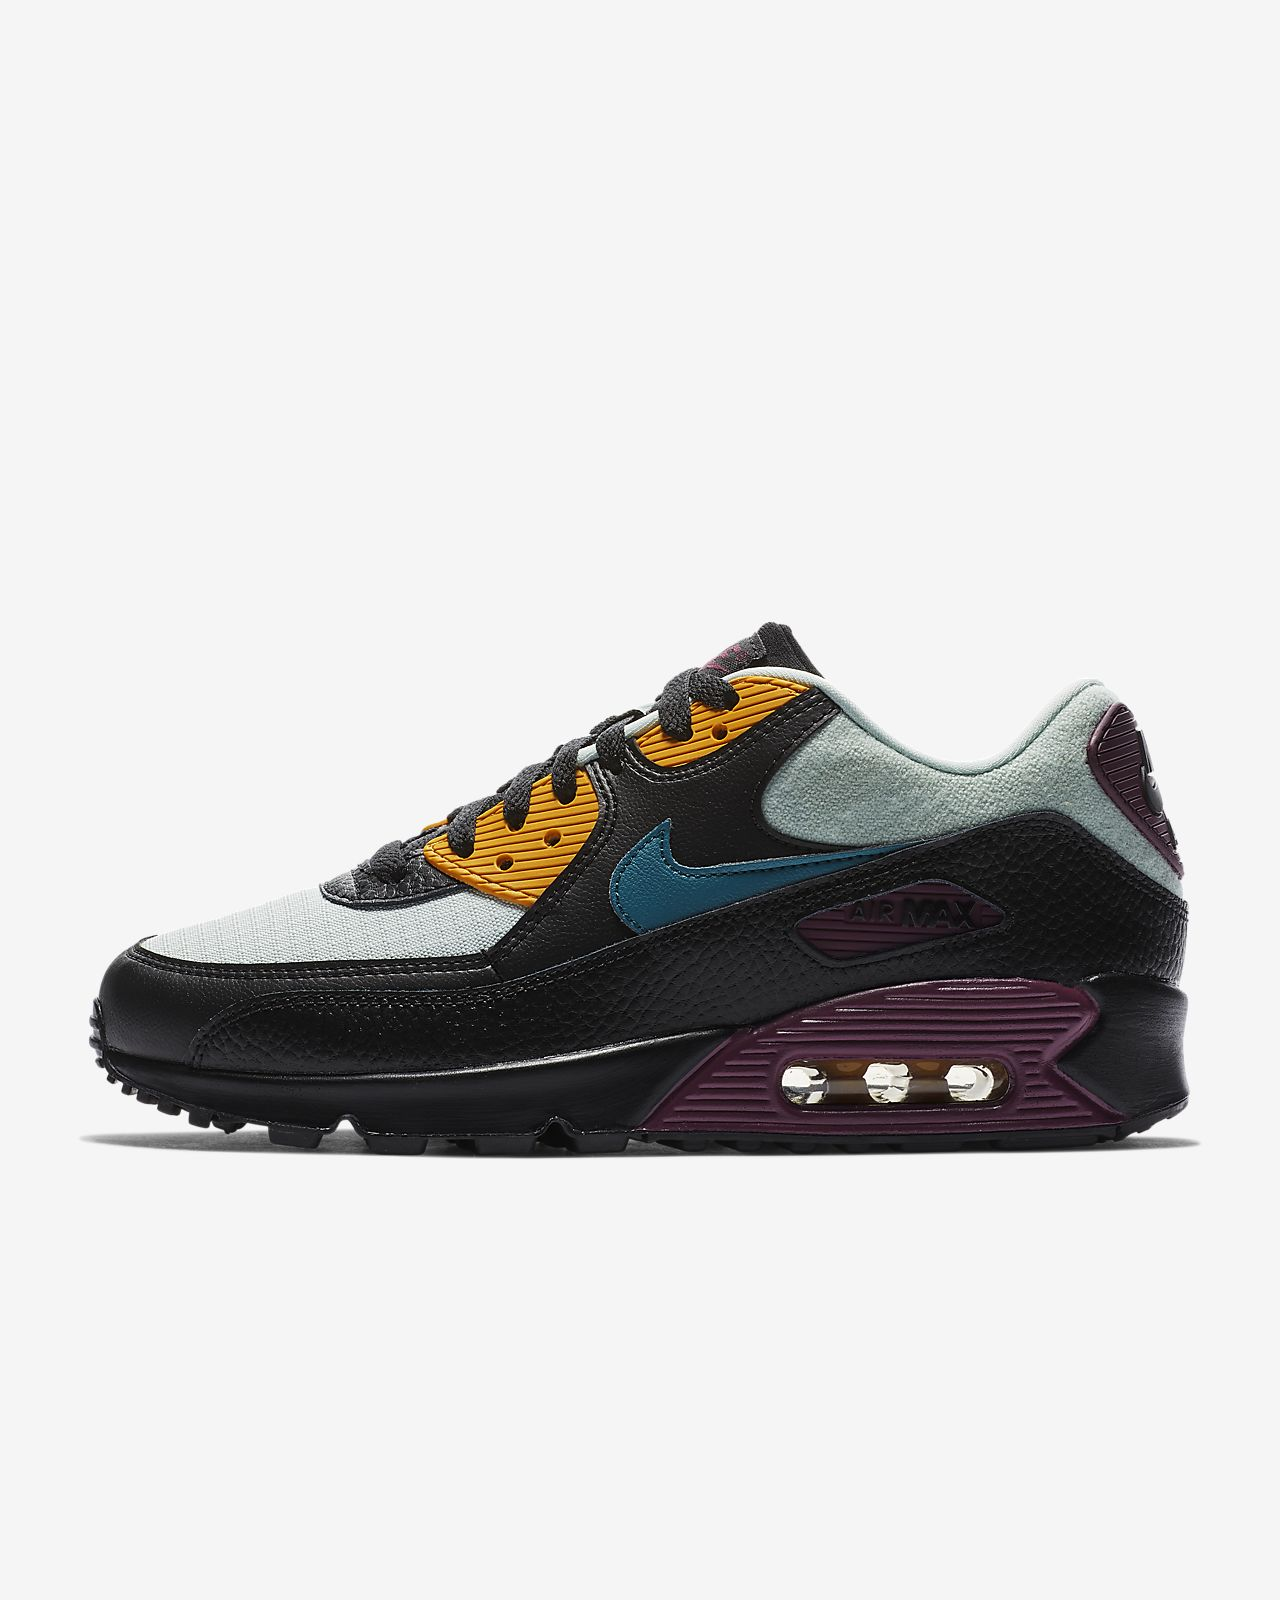 07aff20926b ... Nike Air Max 90 Women s Shoe